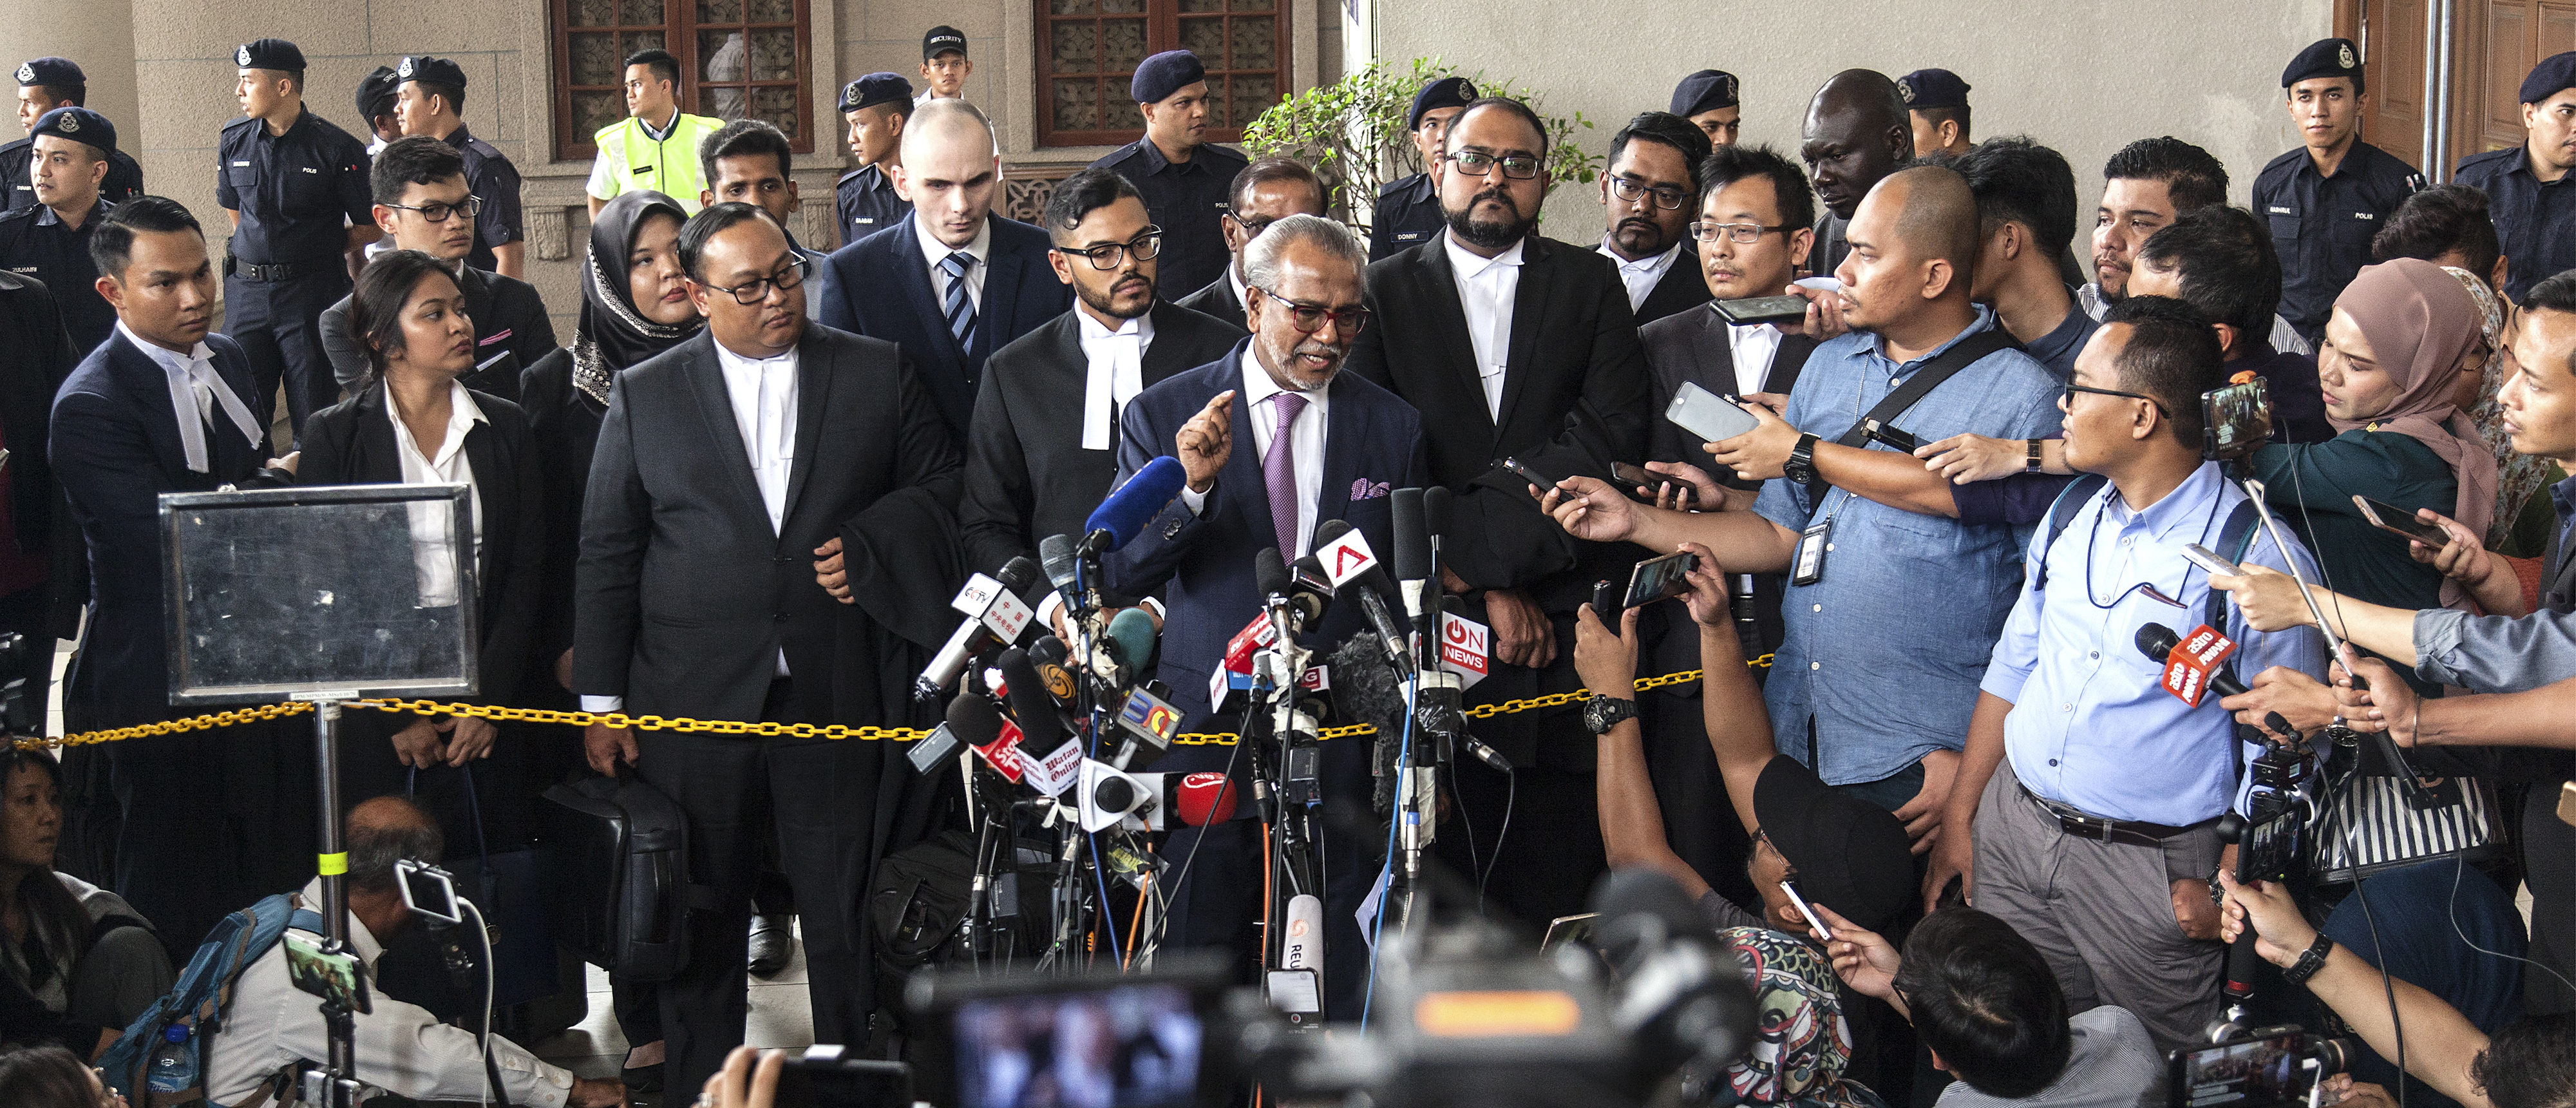 KUALA LUMPUR, MALAYSIA - AUGUST 08: Najib Razak's lawyer Muhammad Shafee Abdullah addresses the media outside the Kuala Lumpur High Court on August 8, 2018 in Kuala Lumpur, Malaysia. Malaysia's former Prime Minister Najib Razak was charged with three counts of money laundering on Wednesday after being hit with new charges in connection with a multi-billion-dollar scandal at state fund 1Malaysia Development Berhad (1MDB) that contributed to his shock election defeat by 93-year-old veteran politician Mahathir Mohamad in May. Najib faces up to 15 years in jail for each charge as he pleaded not guilty to the charges and was released on bail.(Photo by Ore Huiying/Getty Images)